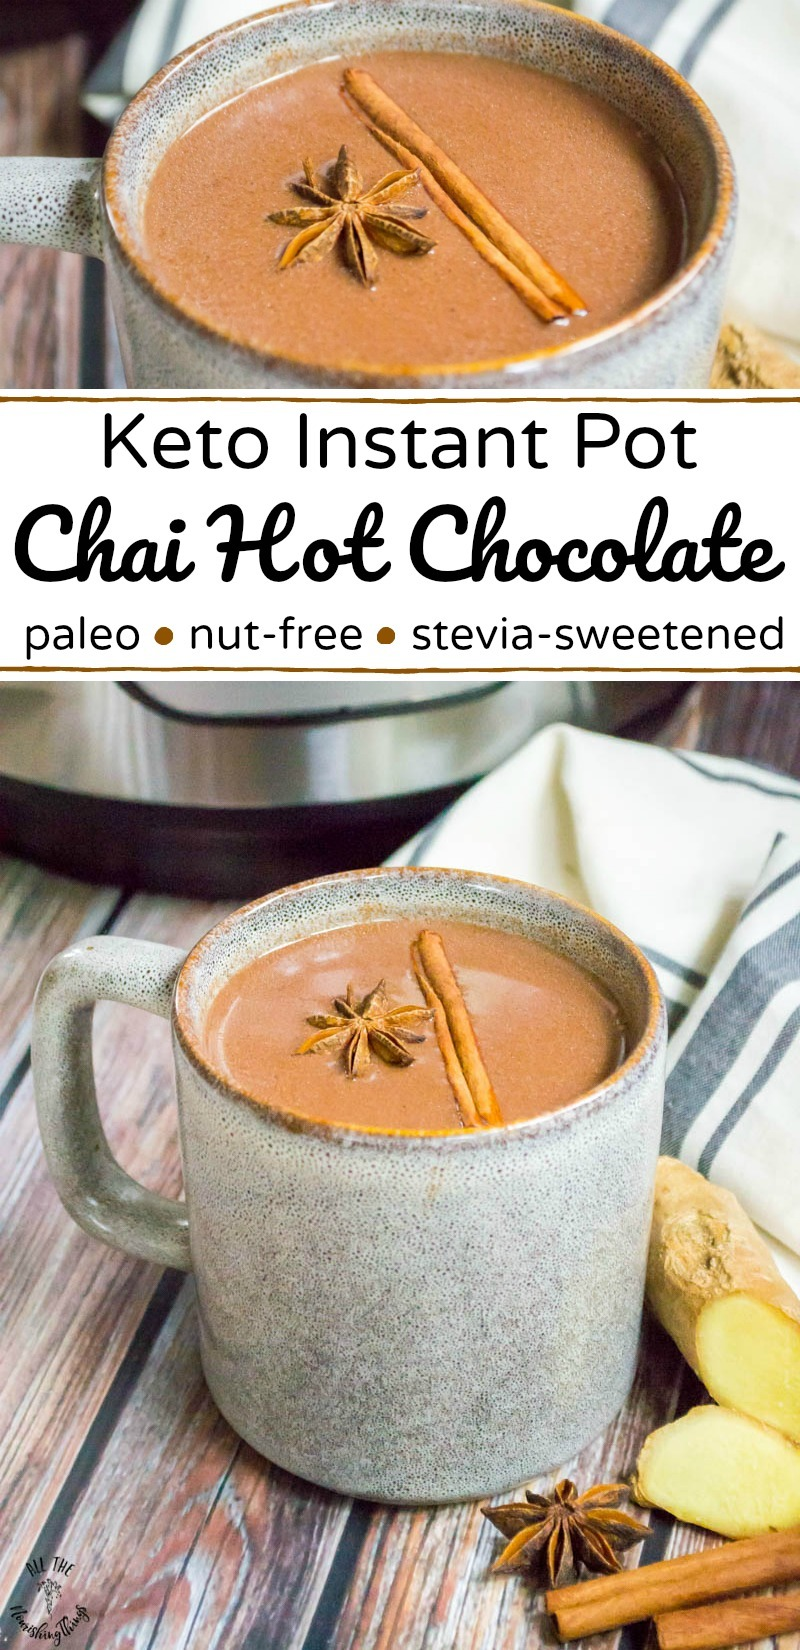 collage of 2 images of keto instant pot chai hot chocolate with text overlay between images